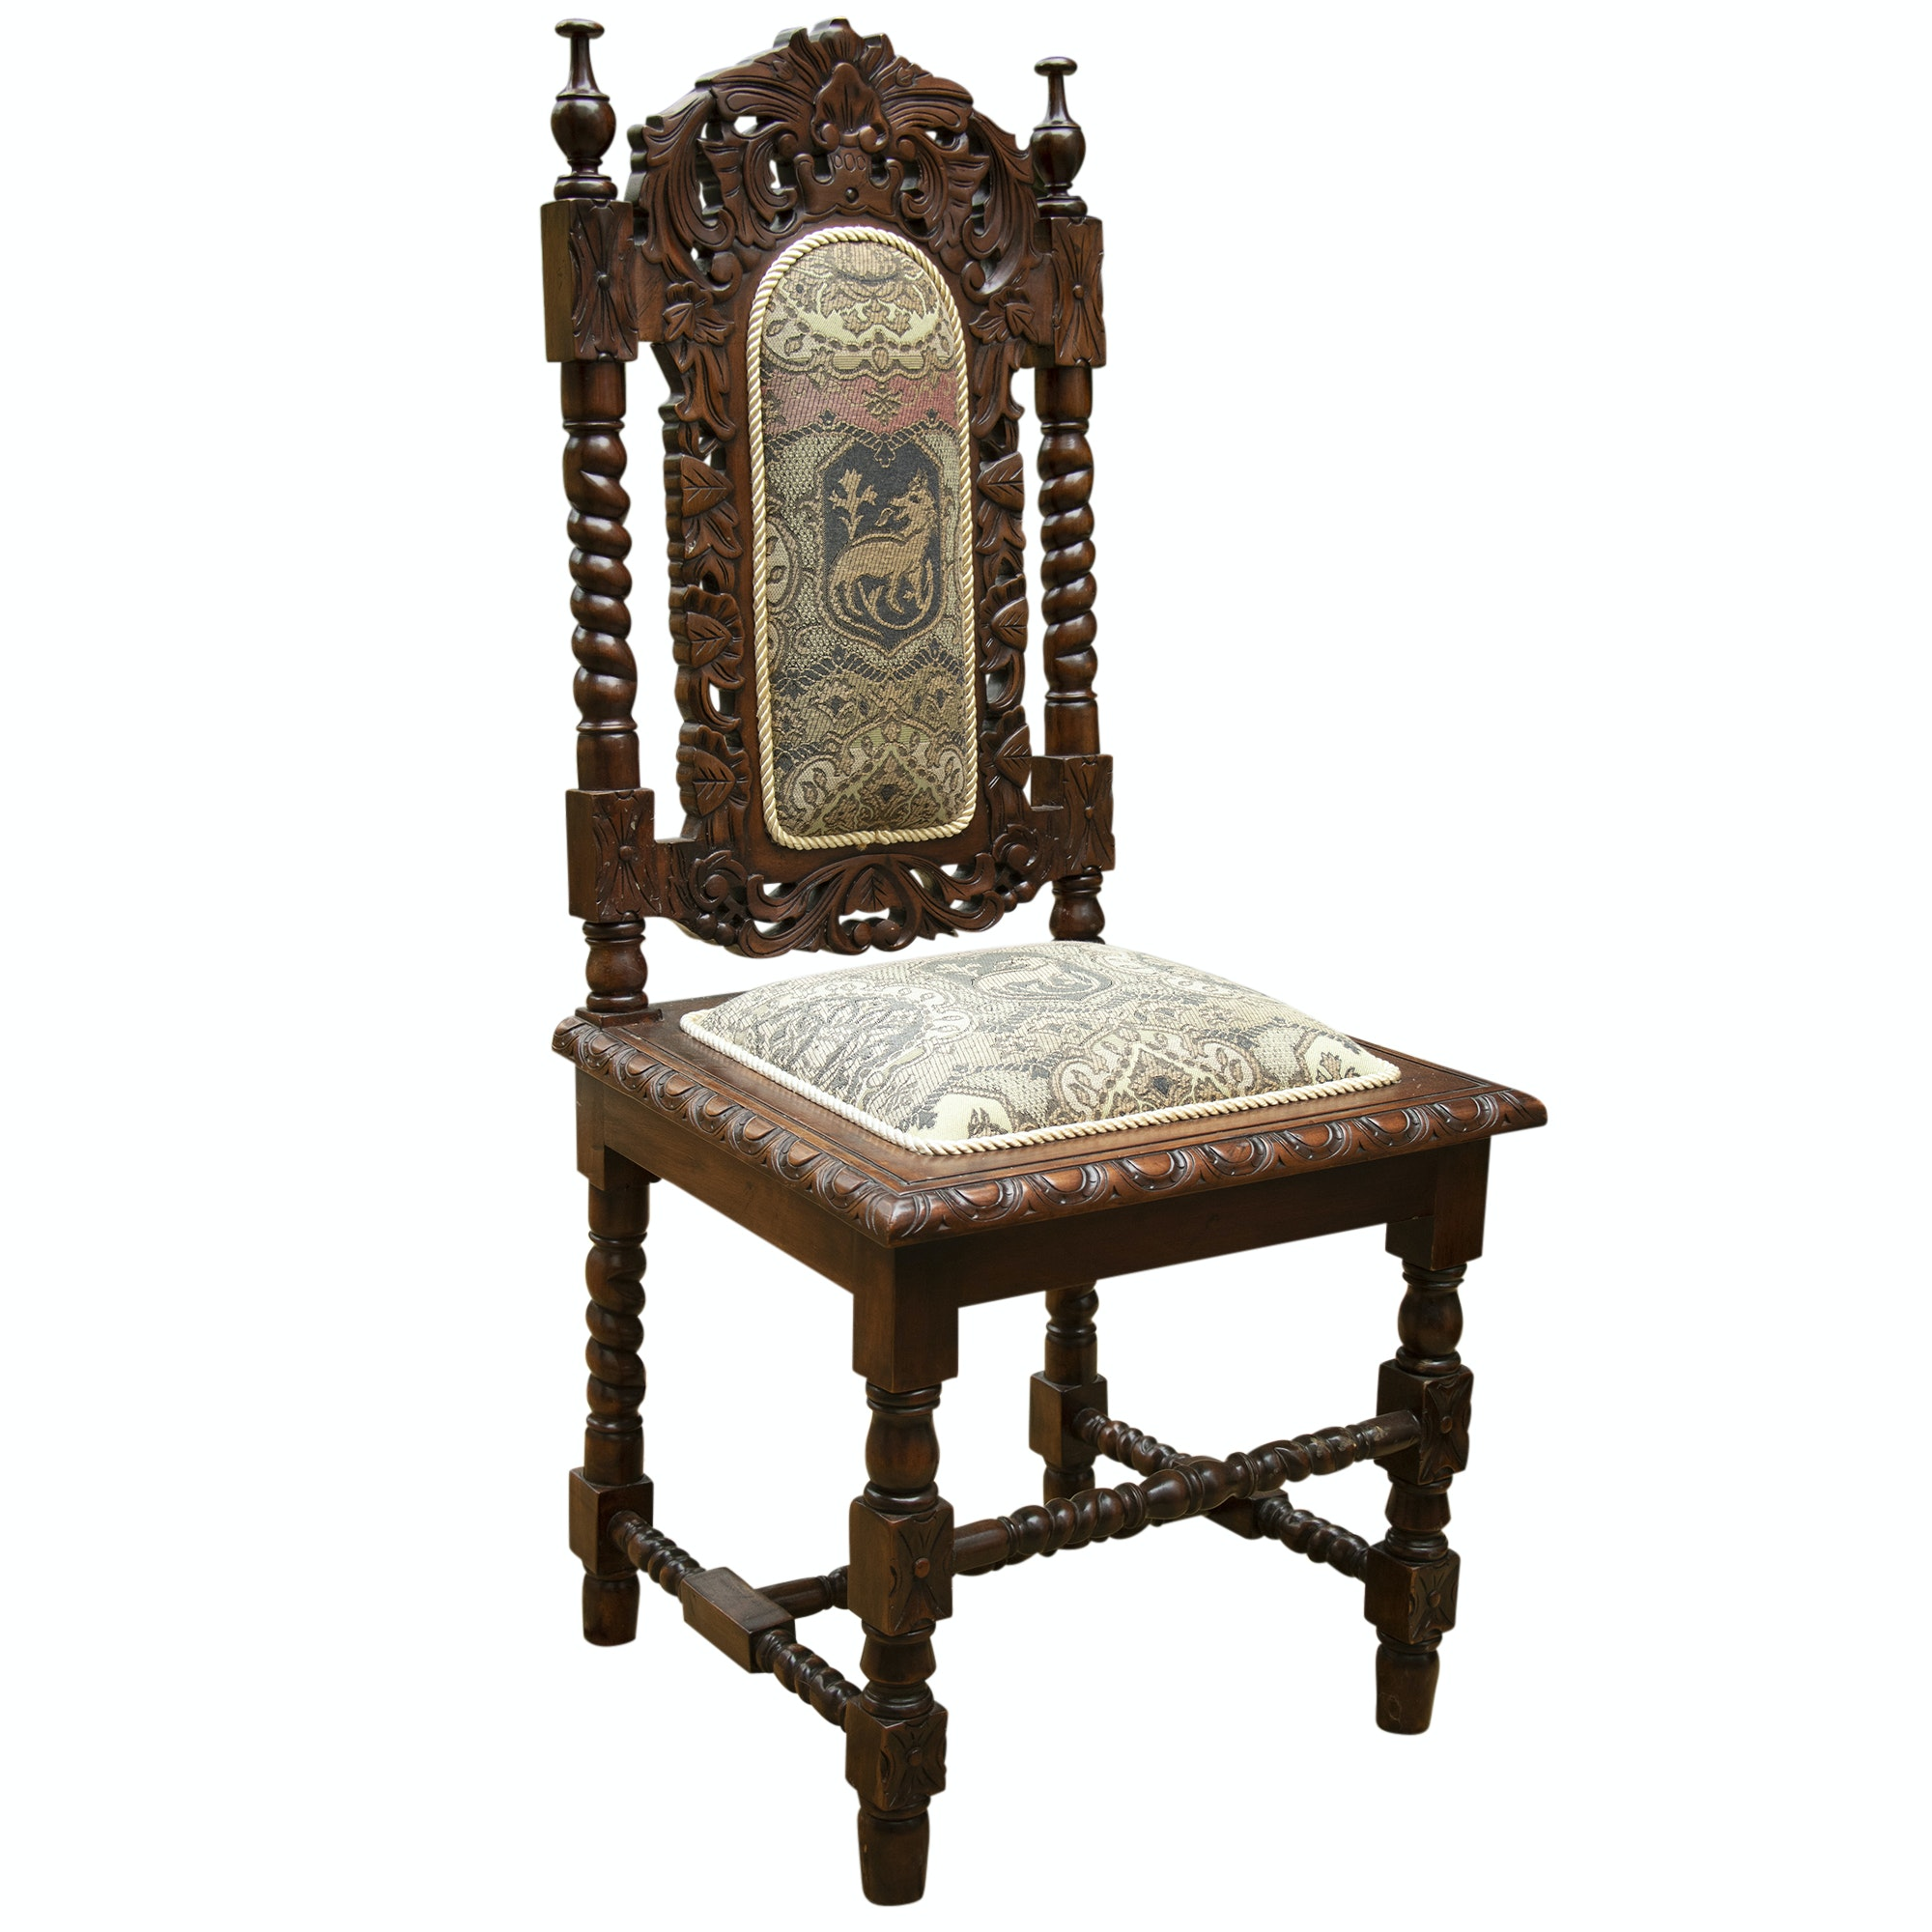 Jacobean Revival Style Walnut Chair, Early 20th Century